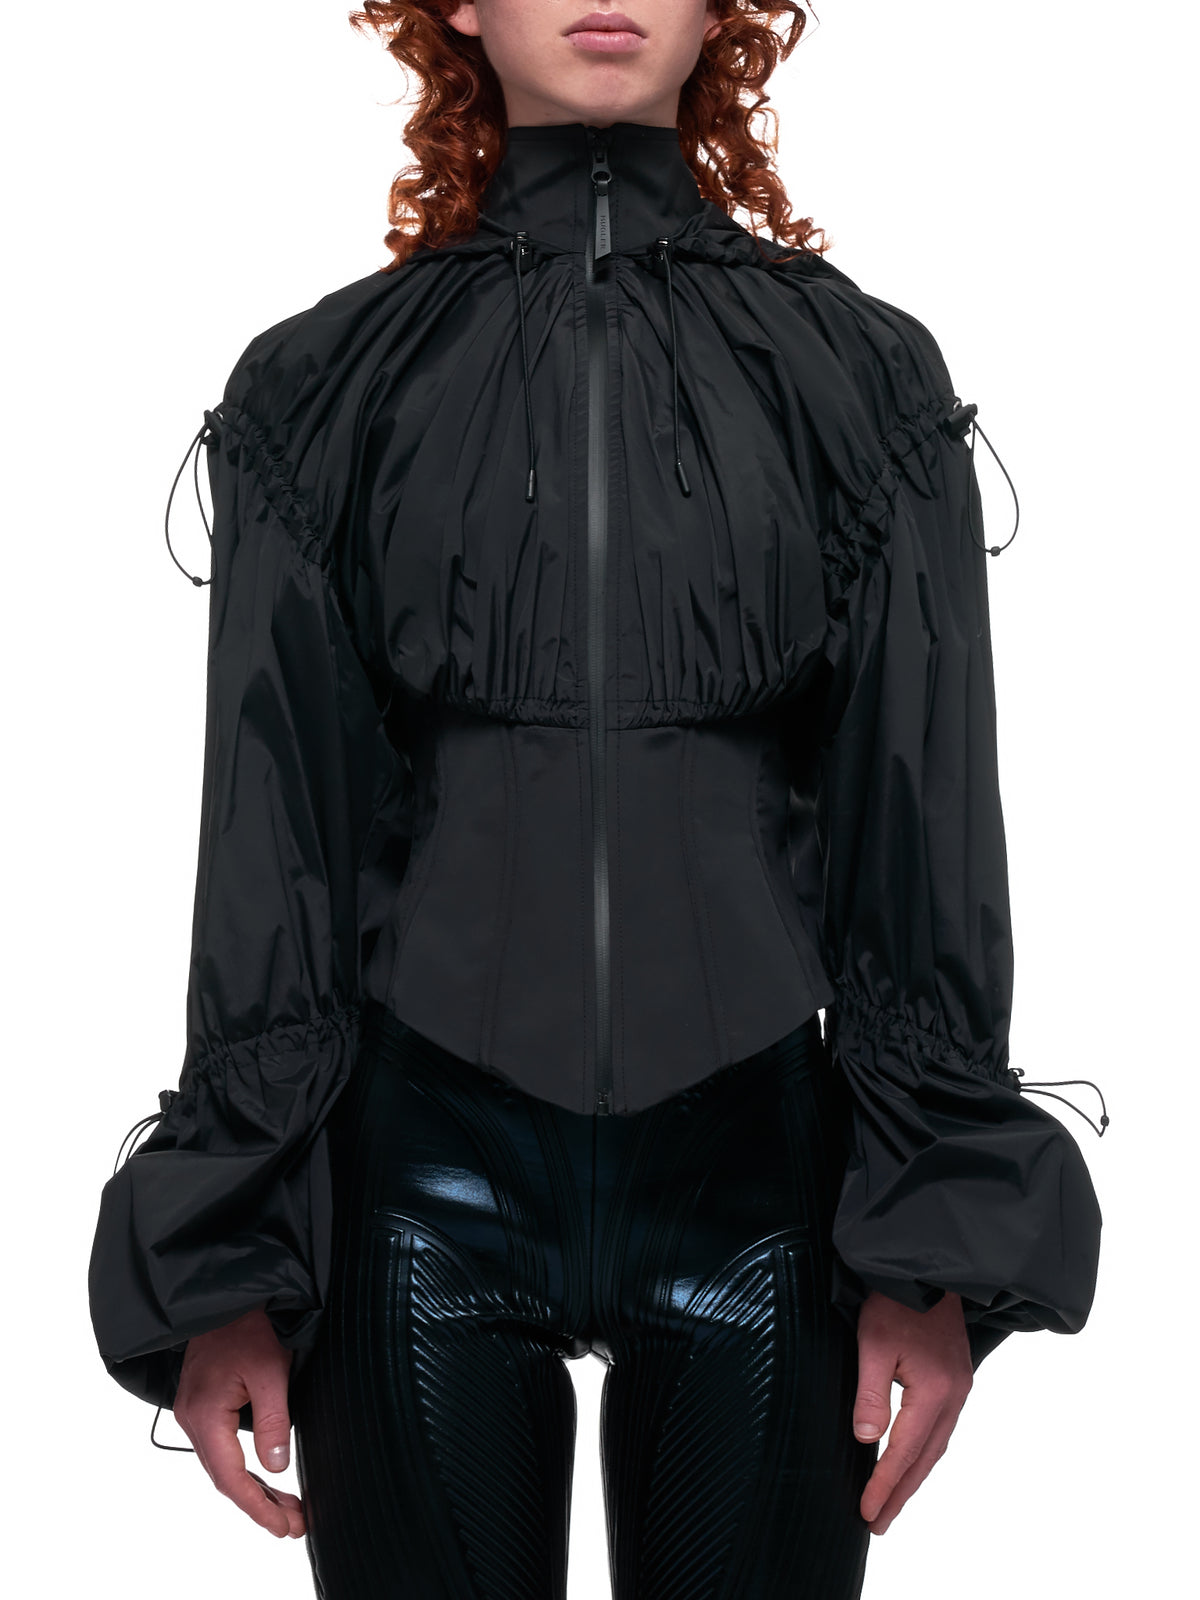 Corset Cycling Jacket (MA0127-BLACK)